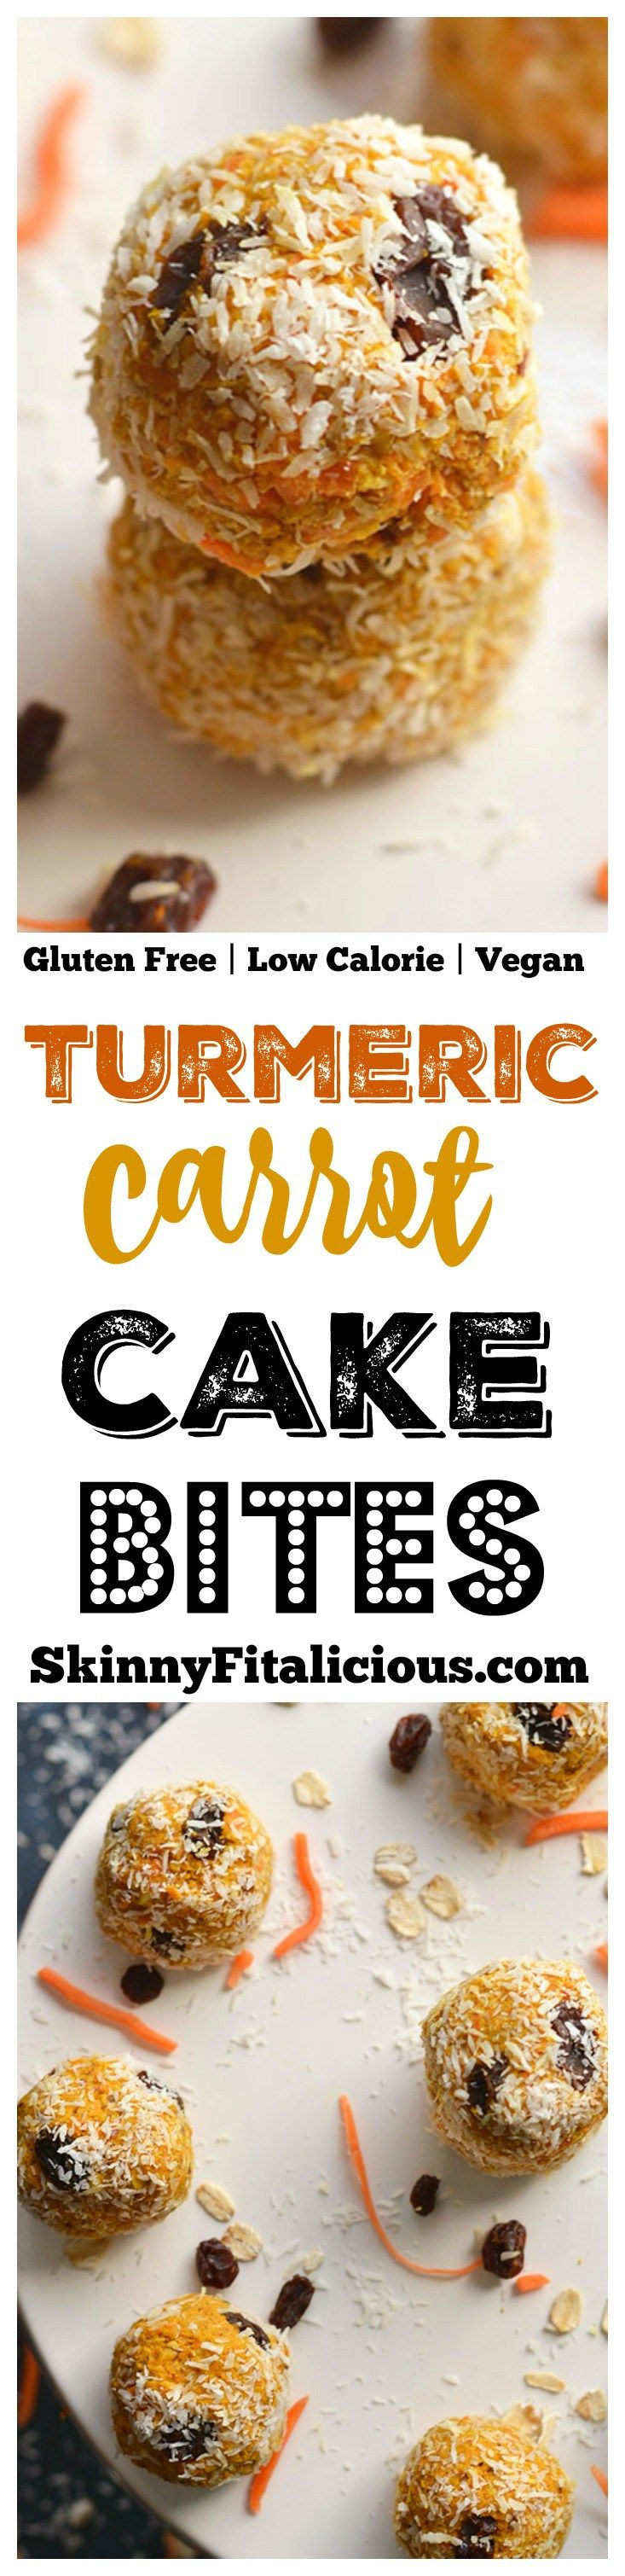 Turmeric Carrot Cake Bites! Made with 8 wholesome ingredients, these nutrition dense bites are a delicious no bake snack you can take with you anywhere. Gluten Free + Low Calorie + Vegan